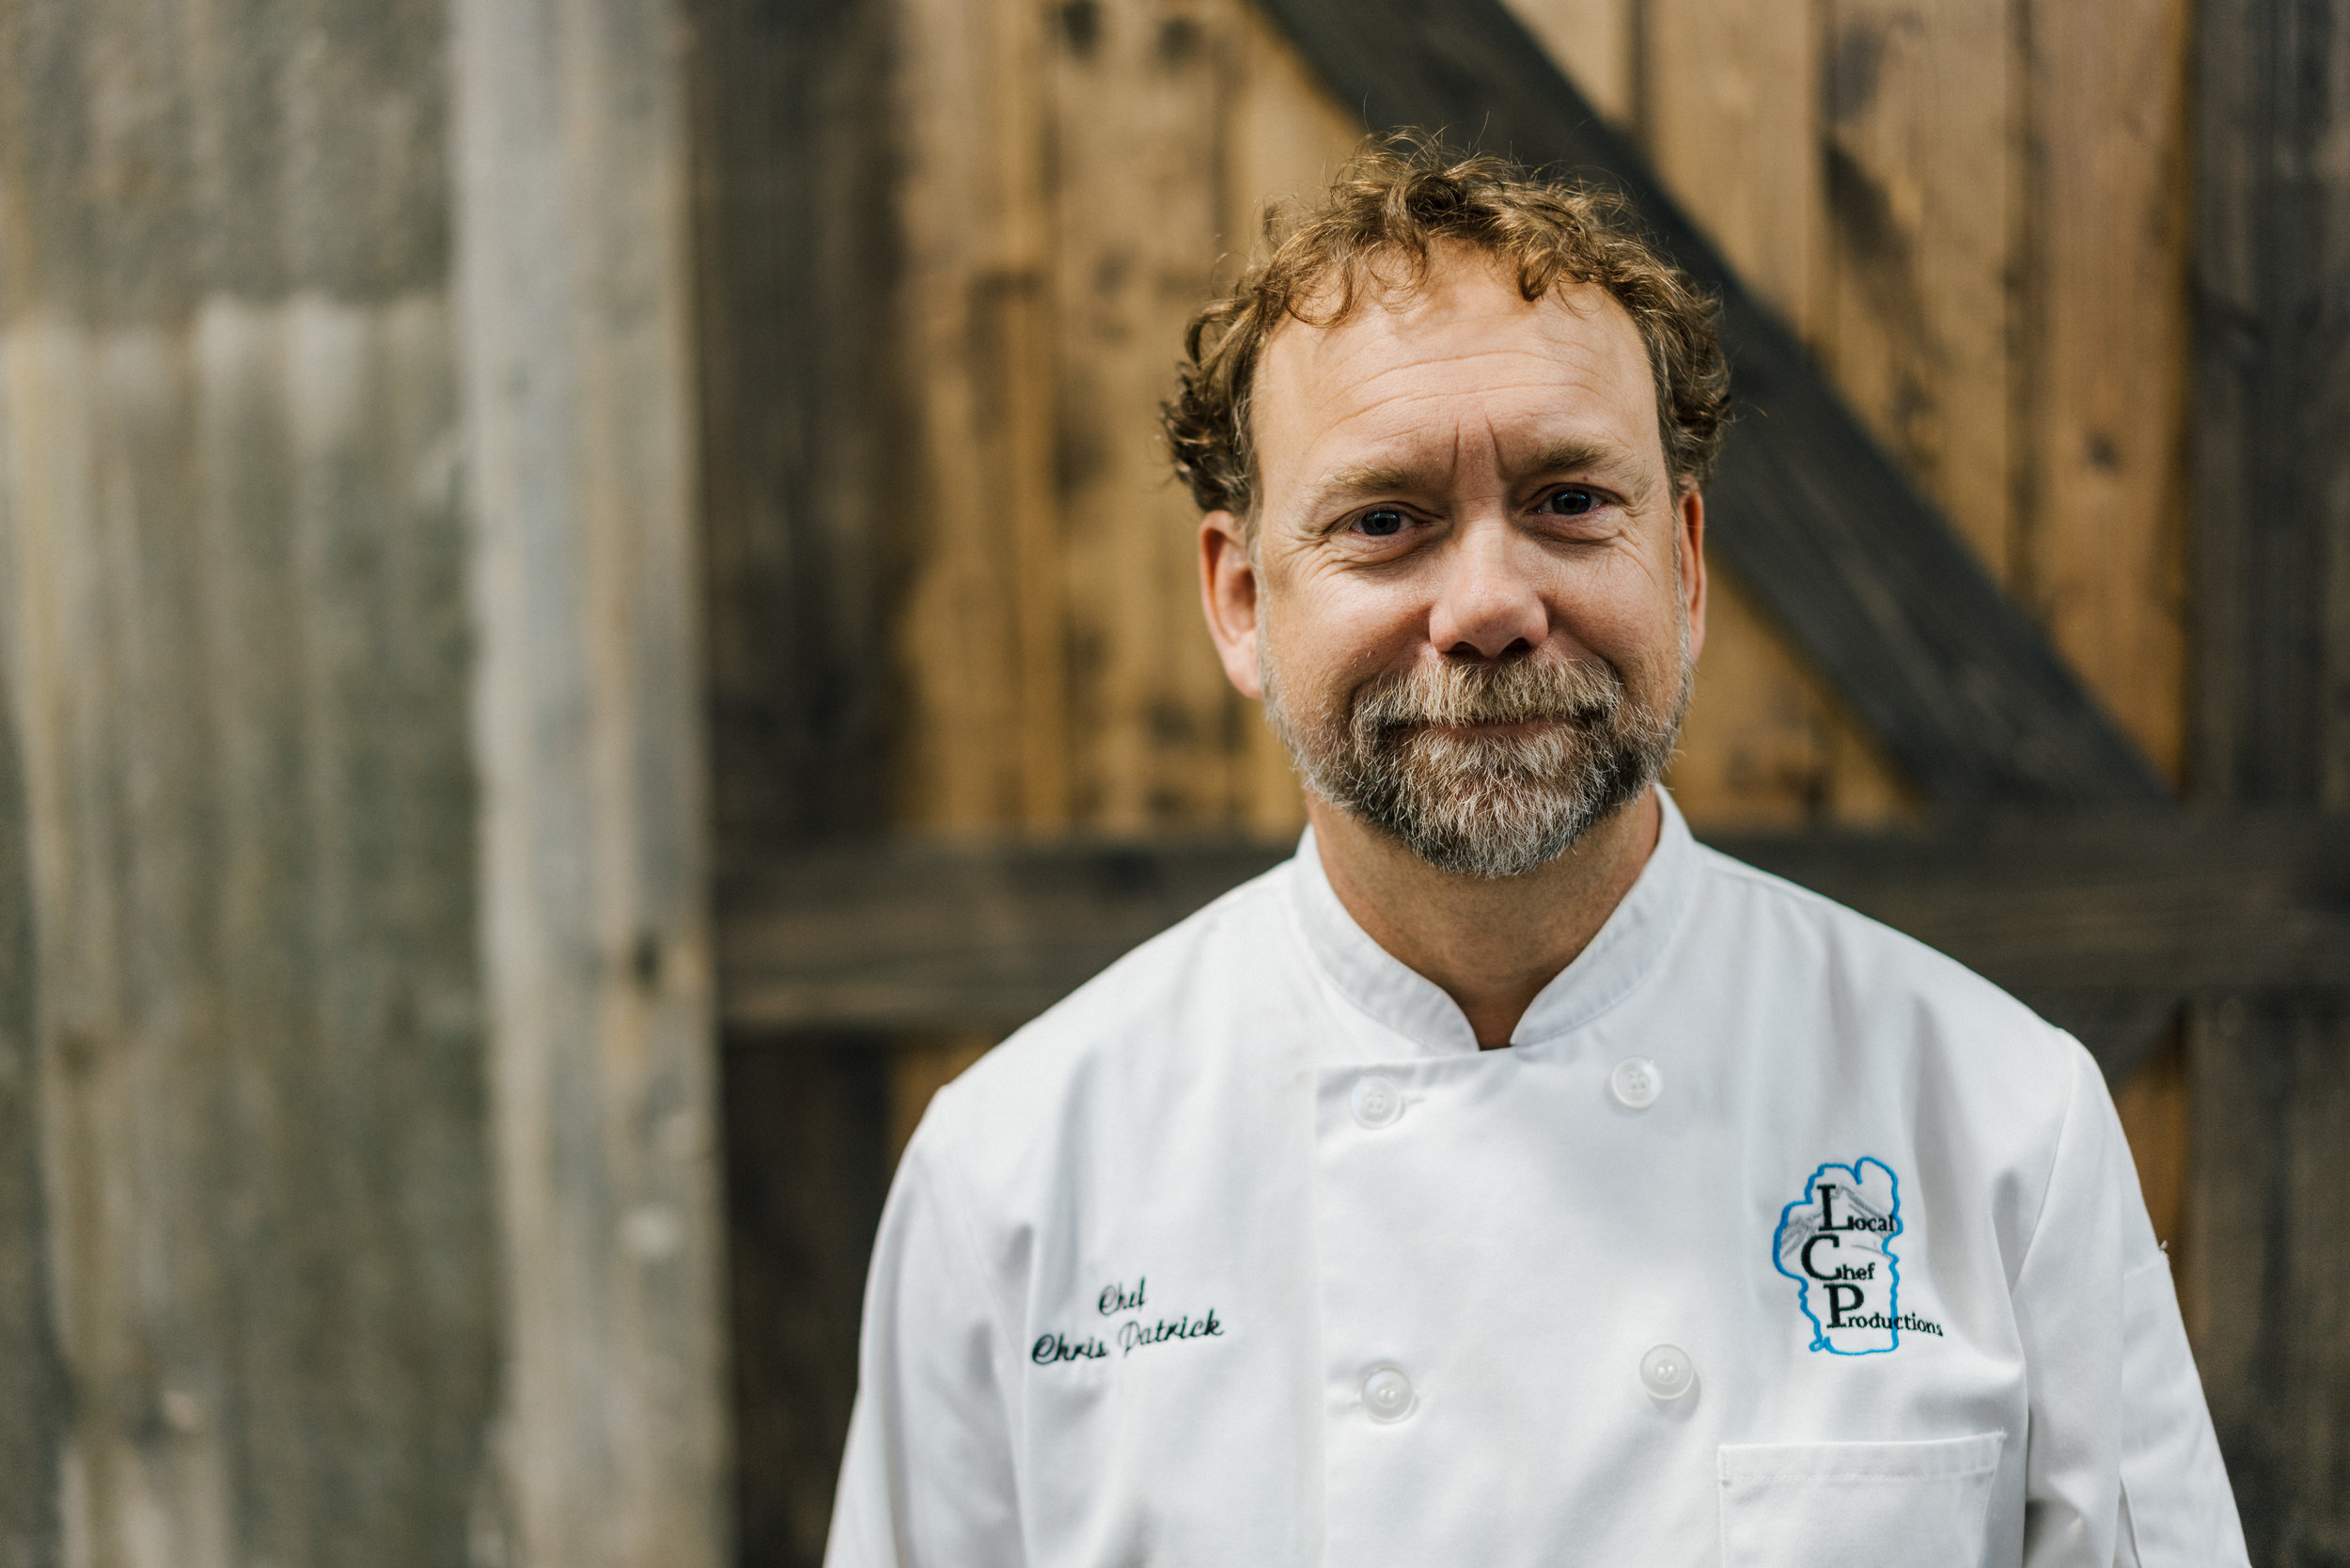 Chris Patrick - FOUNDER & EXECUTIVE CHEFBorn in California and raised in MinnesotaGraduate of CSU Chico Butte Culinary AcademyOver 20 years and counting of professional cooking experiencePrivate chef, food and beverage director (and everything in between)Inspired by my grandmother Dorothy with her 35 years as a professional cookPassionate outdoor enthusiast living the dream in the Sierras; via skiing, whitewater rafting, backpacking, mountain biking and fishingInterests: sustainable organic small farming, community food education, and supporting local businesses.